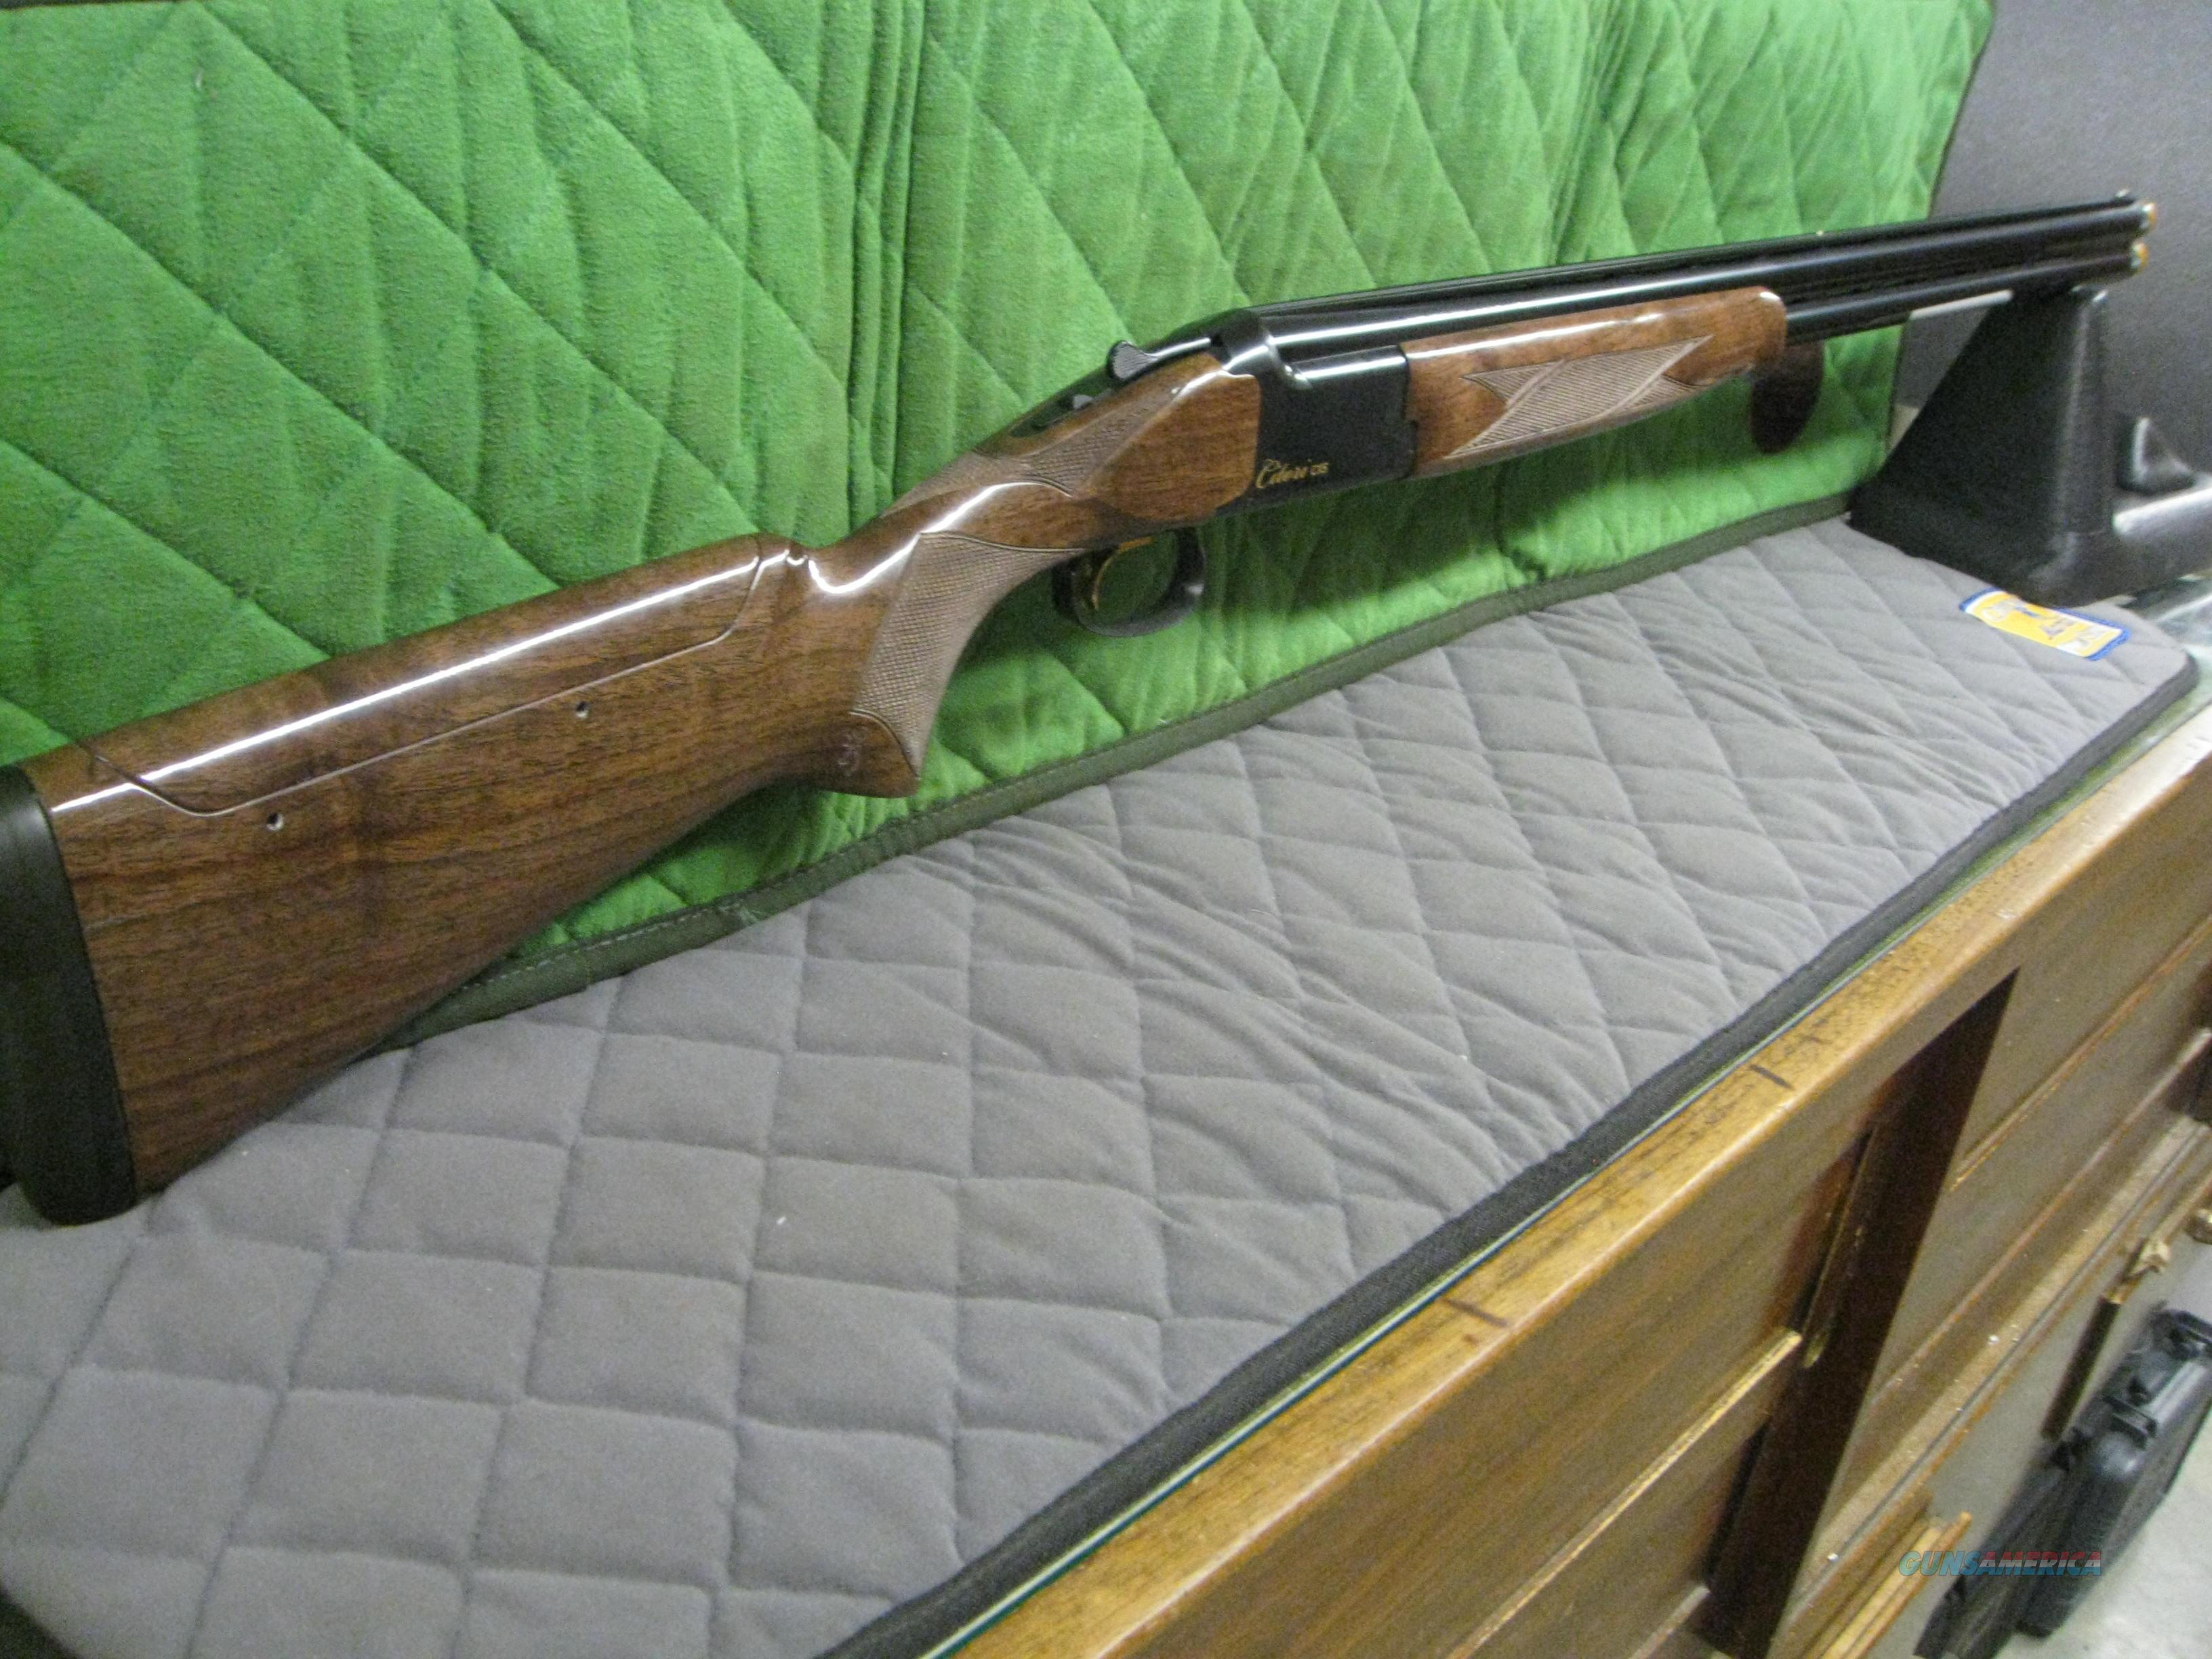 Browning Citori CXS ADJ 28 Inch  **NO CC FEES** 018110304  Guns > Shotguns > Browning Shotguns > Over Unders > Citori > Trap/Skeet